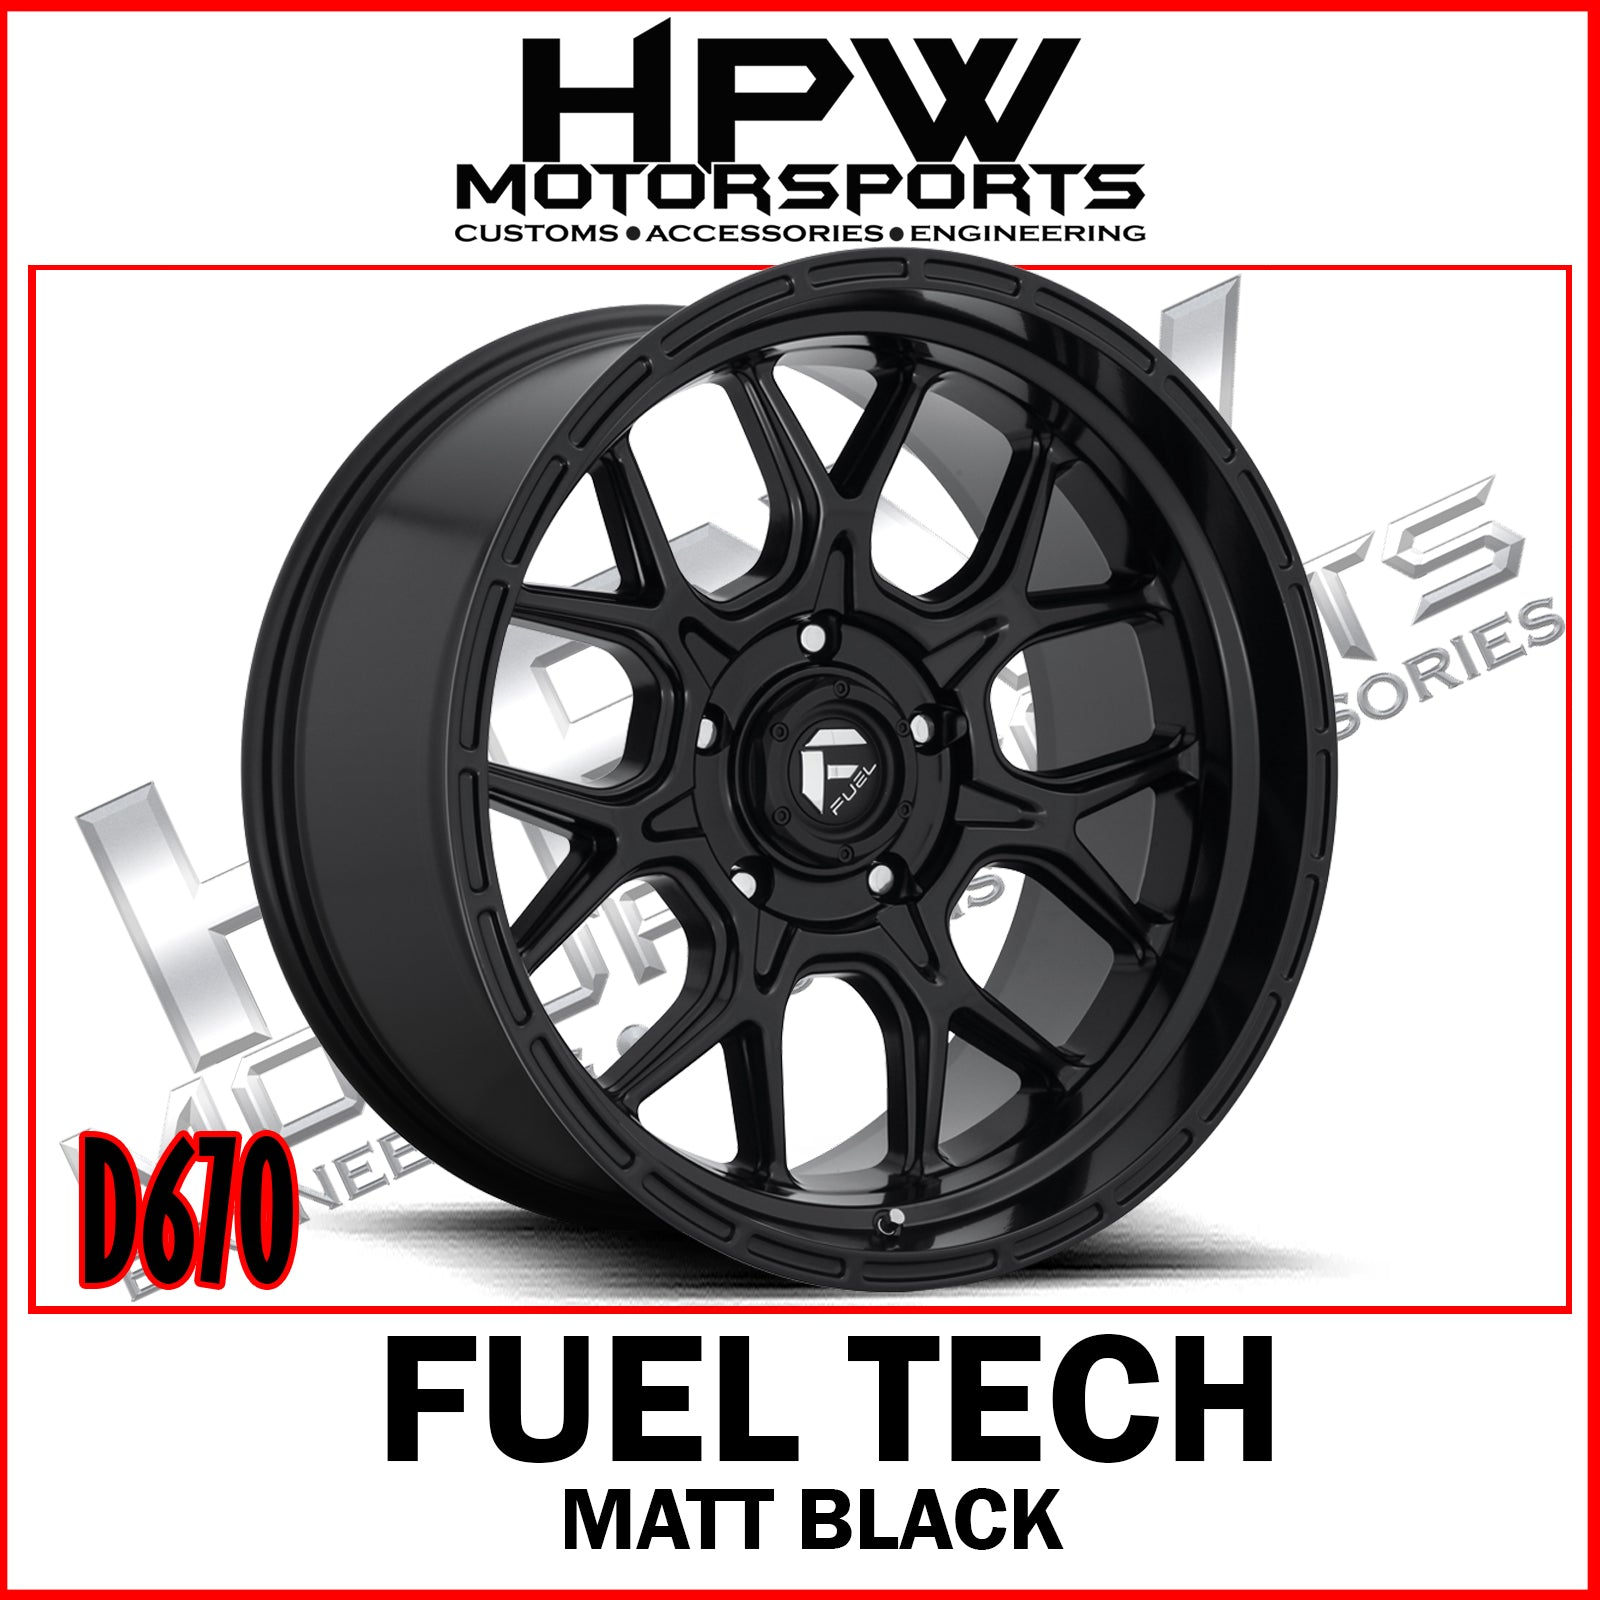 D670 FUEL TECH - MATT BLACK - Set of 4